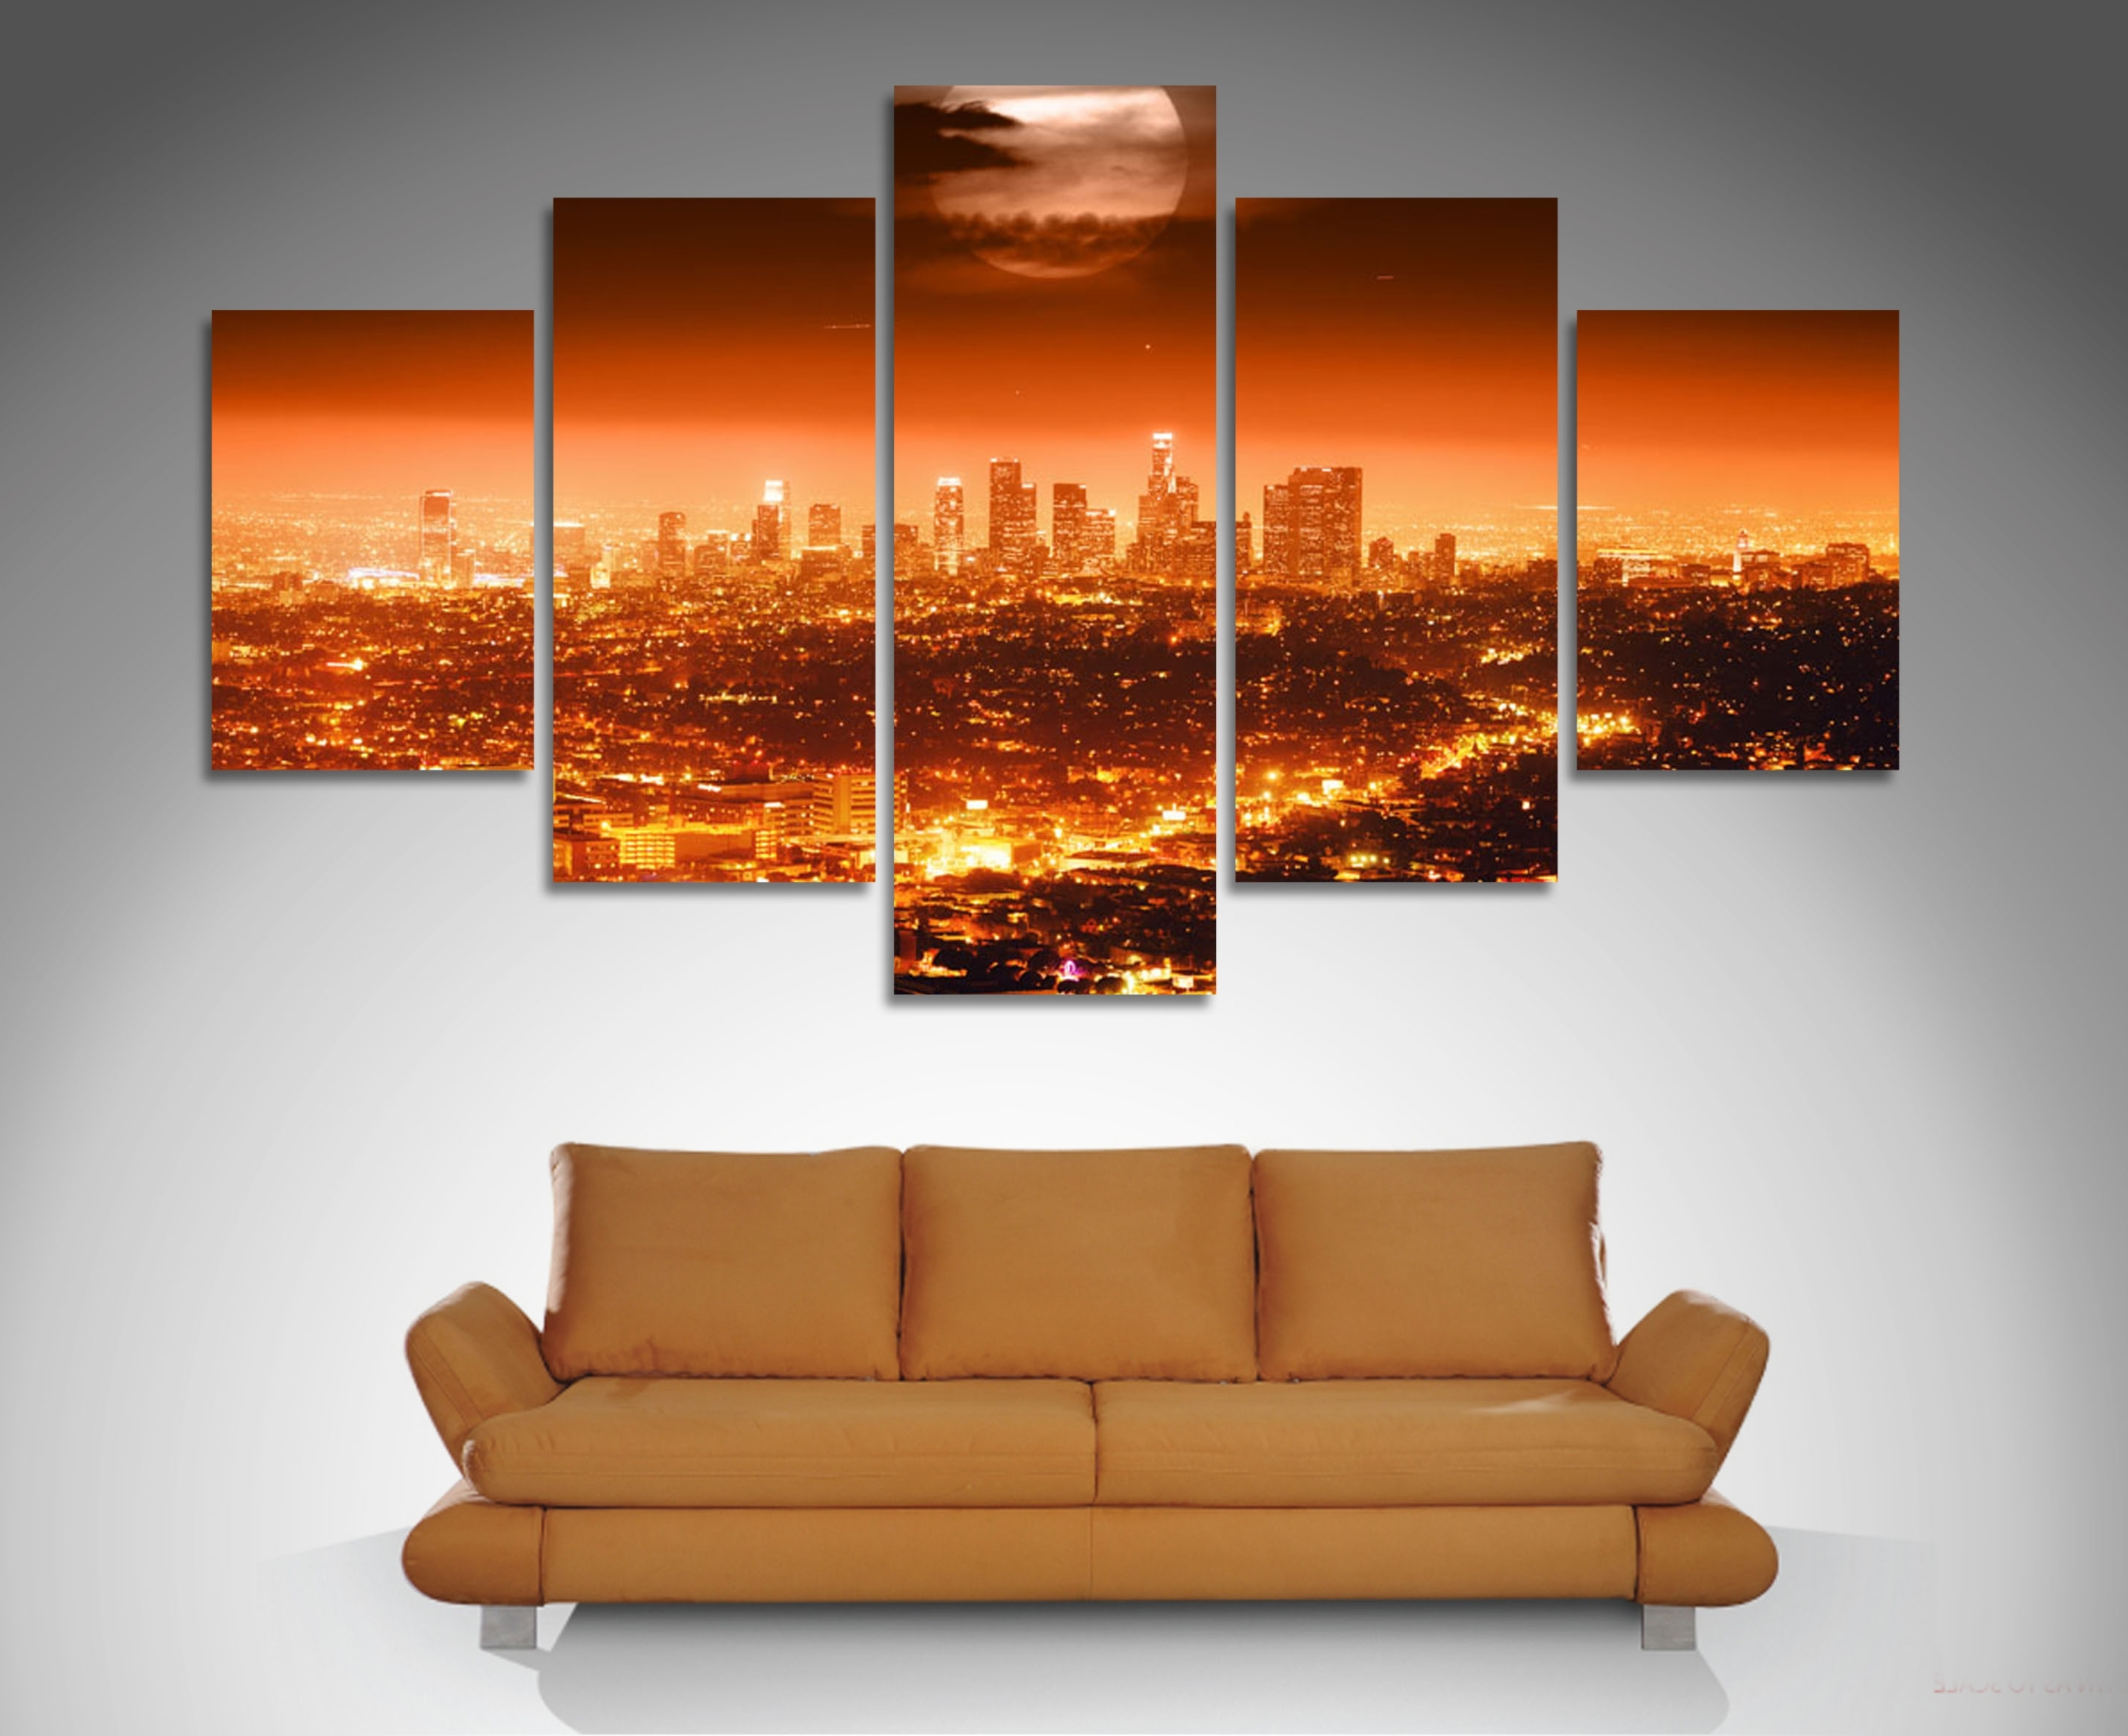 Los Angeles Canvas Wall Art Throughout Well Known Los Angeles 5 Panel Diamond Shape Canvas Prints Http://www (Gallery 1 of 15)